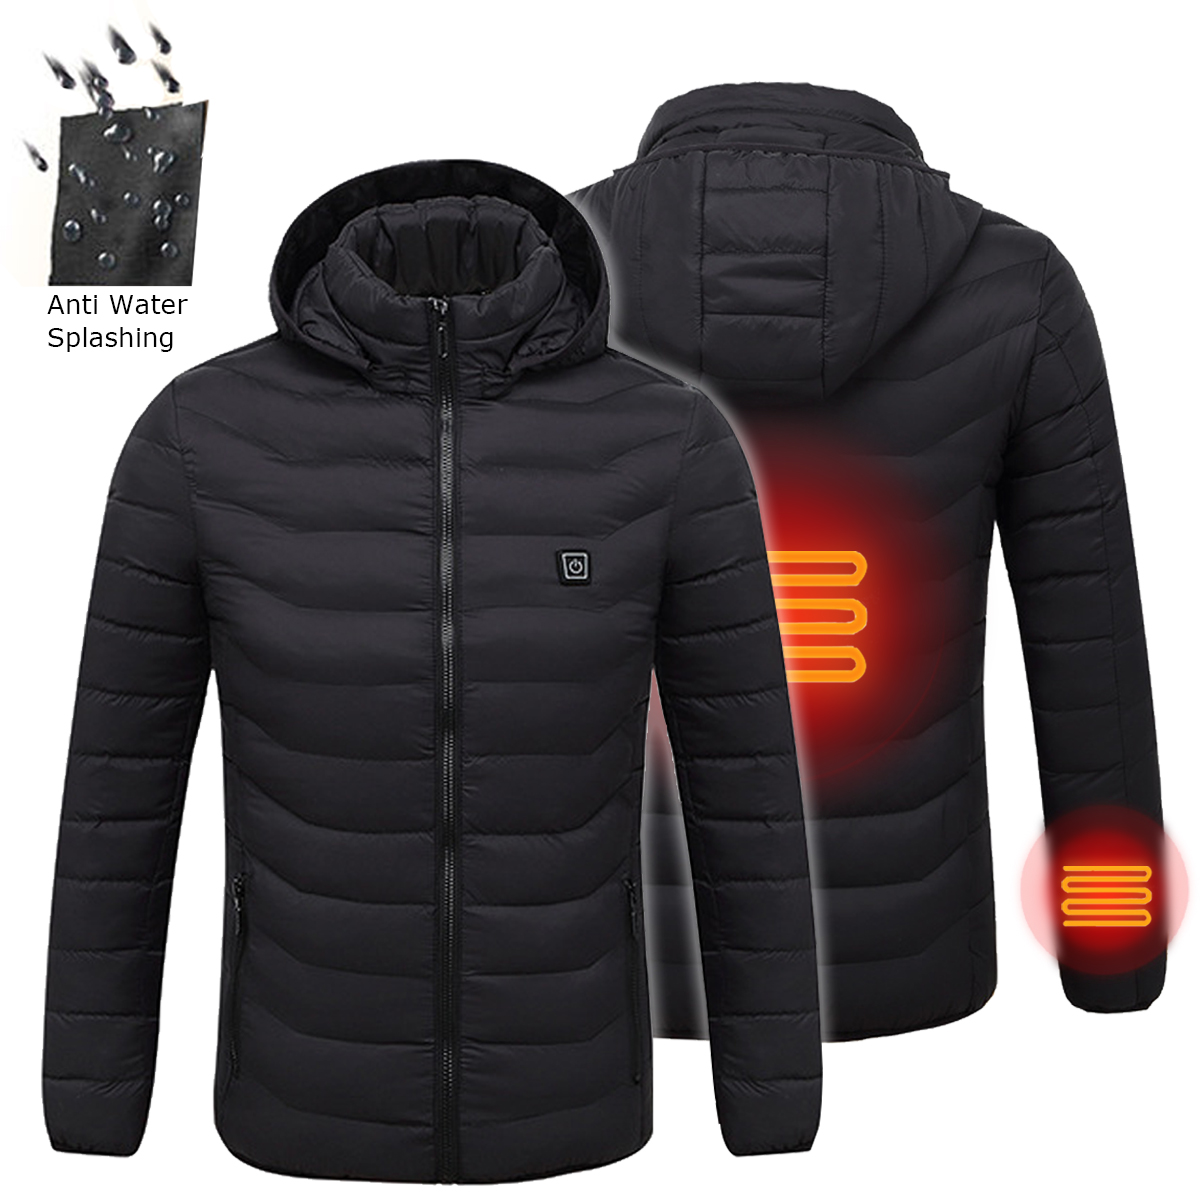 NEW Universal Winter Heated USB Hooded Work Jacket Coats Adjustable Temperature Control Safety Clothing mens winter heated usb charge hooded work jacket coats vest adjustable temperature control safety clothing